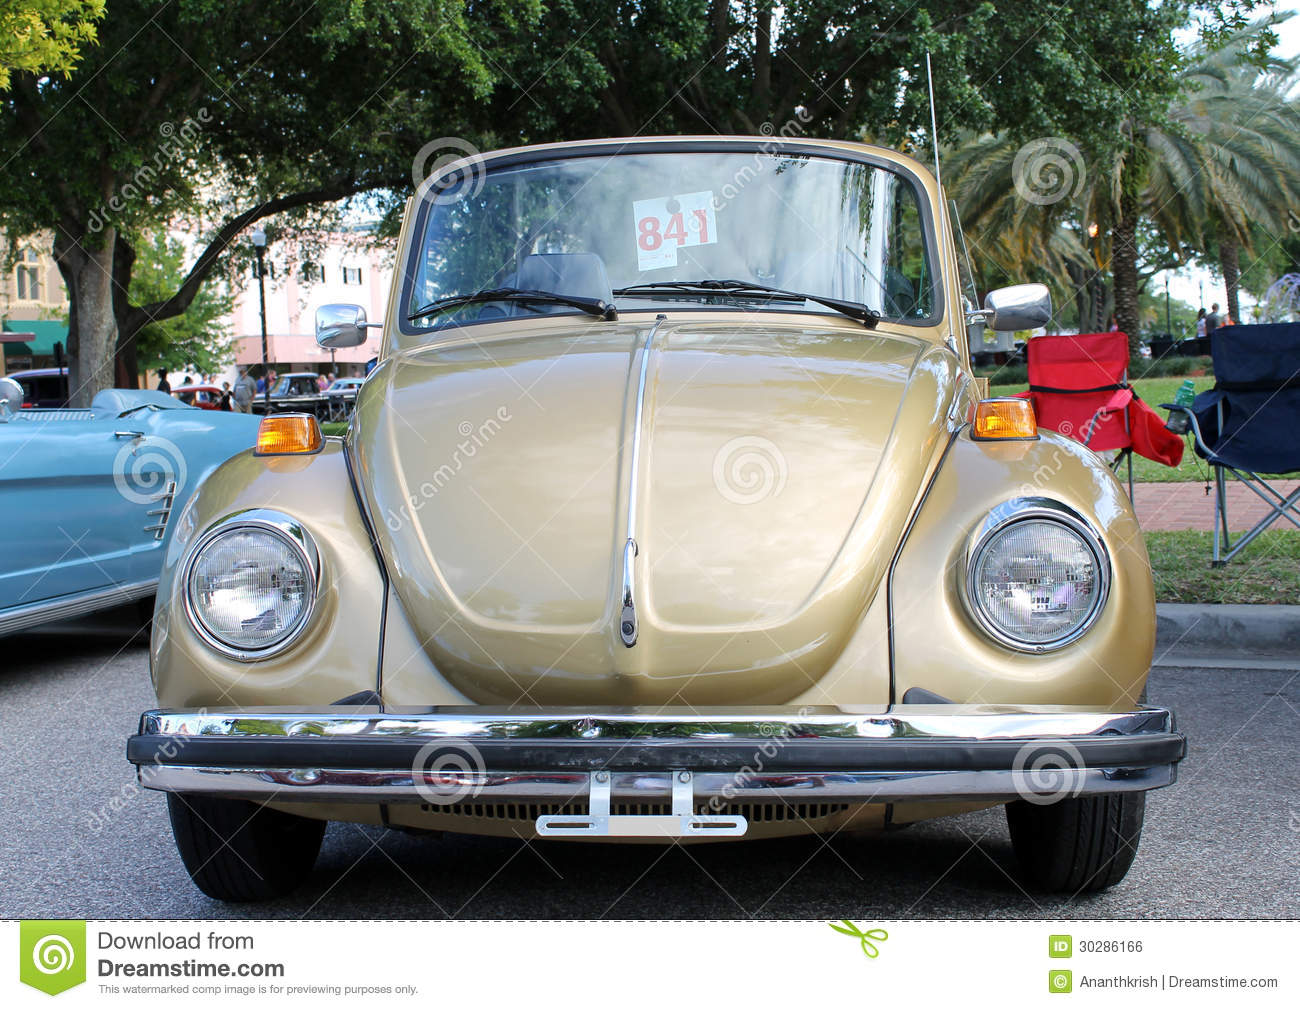 Old Volkswagen car stock photo. Image of business, value - 30286166